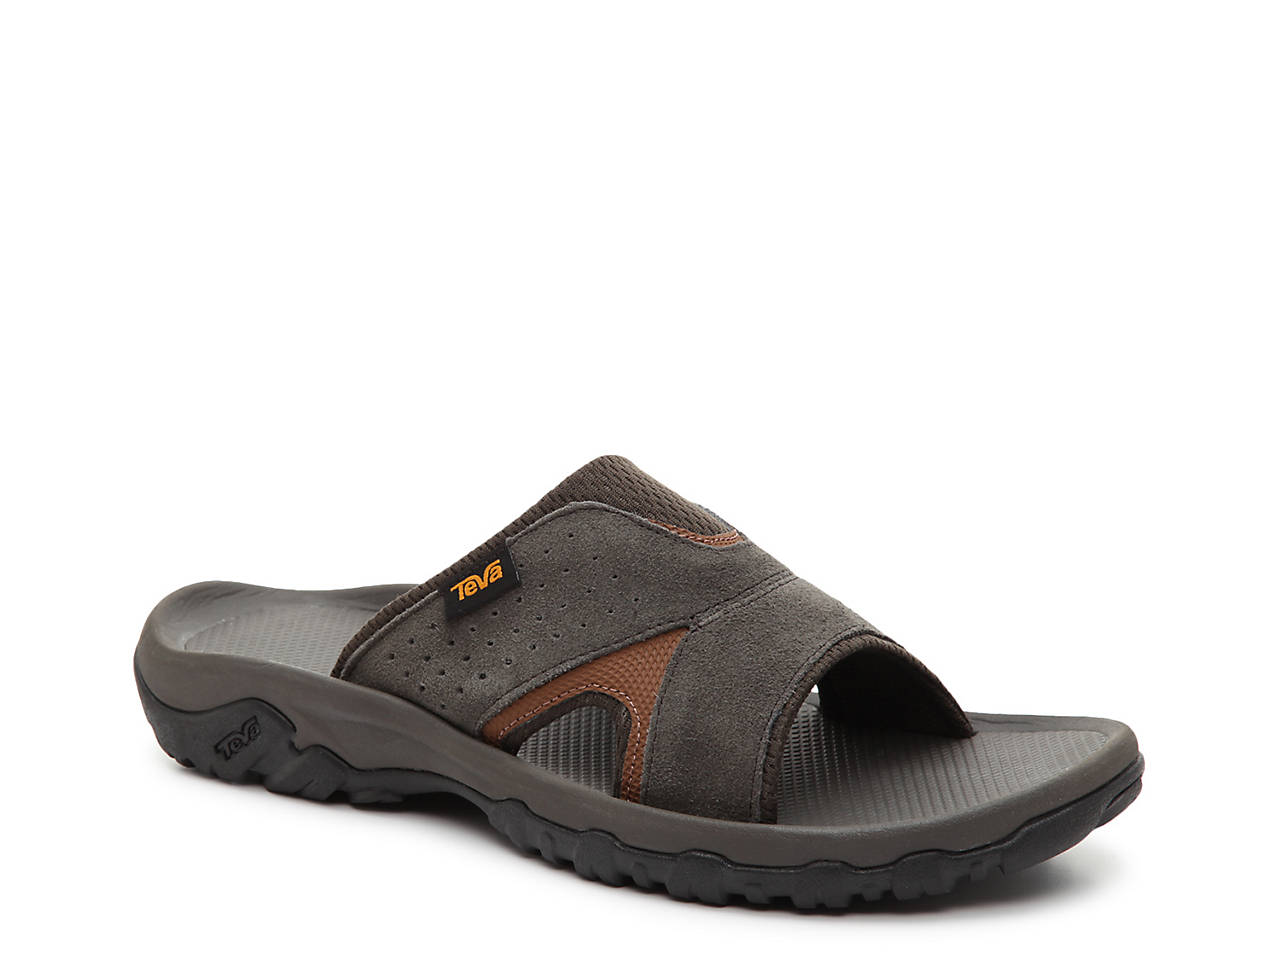 594ce0c3bf9 Teva Katavi 2 Slide Sandal Men s Shoes